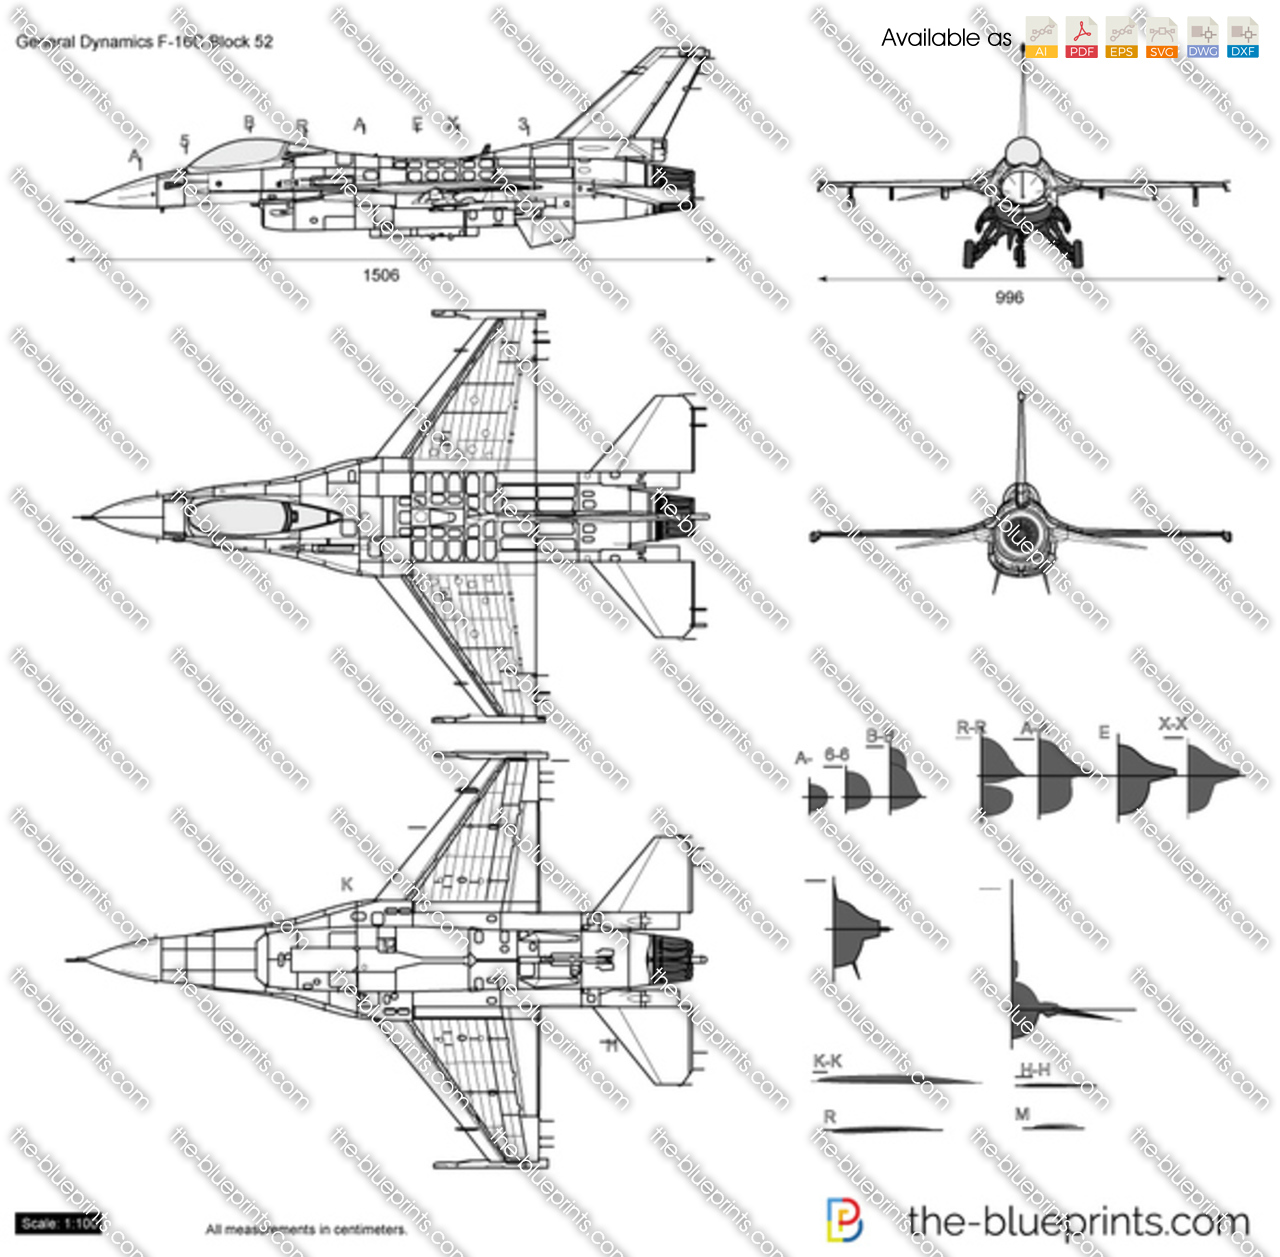 The-Blueprints.com - Blueprints > Modern airplanes > General ...